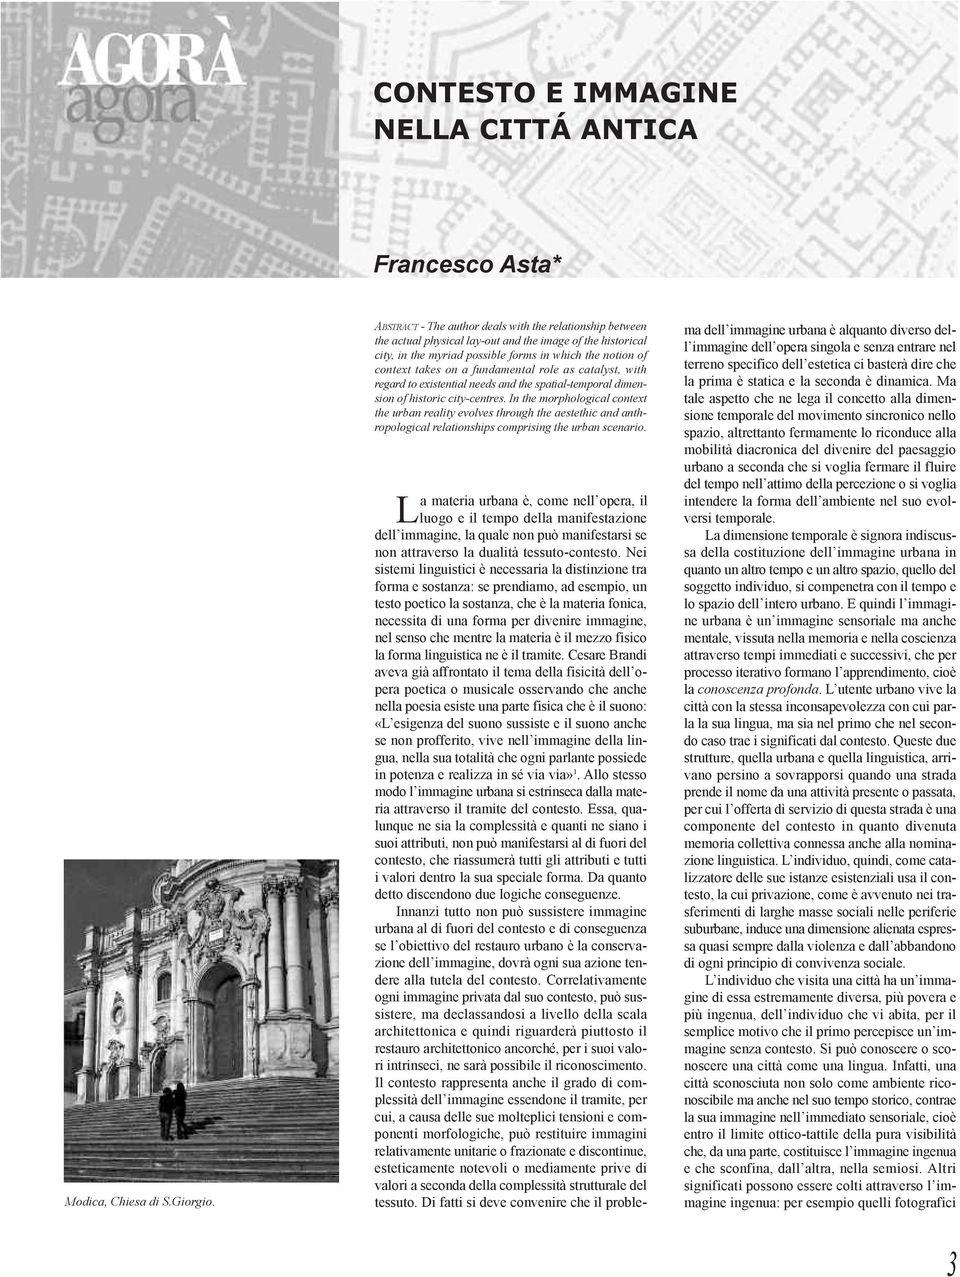 fundamental role as catalyst, with regard to existential needs and the spatial-temporal dimension of historic city-centres.